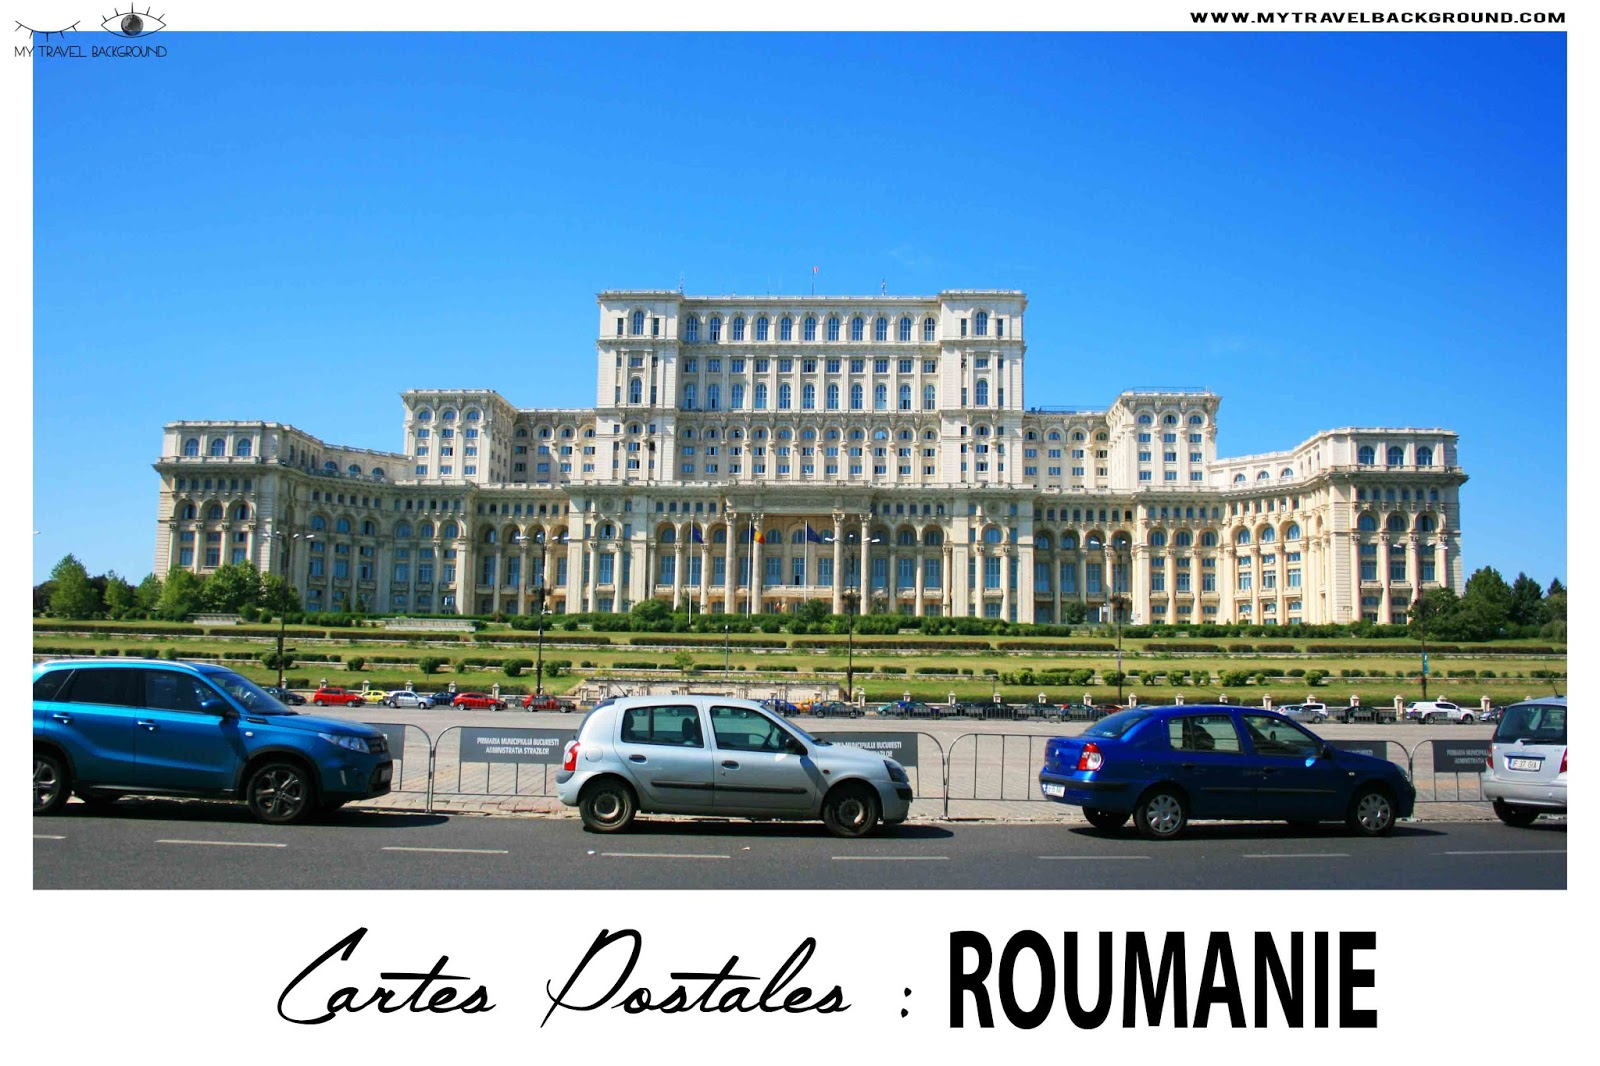 My Travel Background : cartes postales de Roumanie